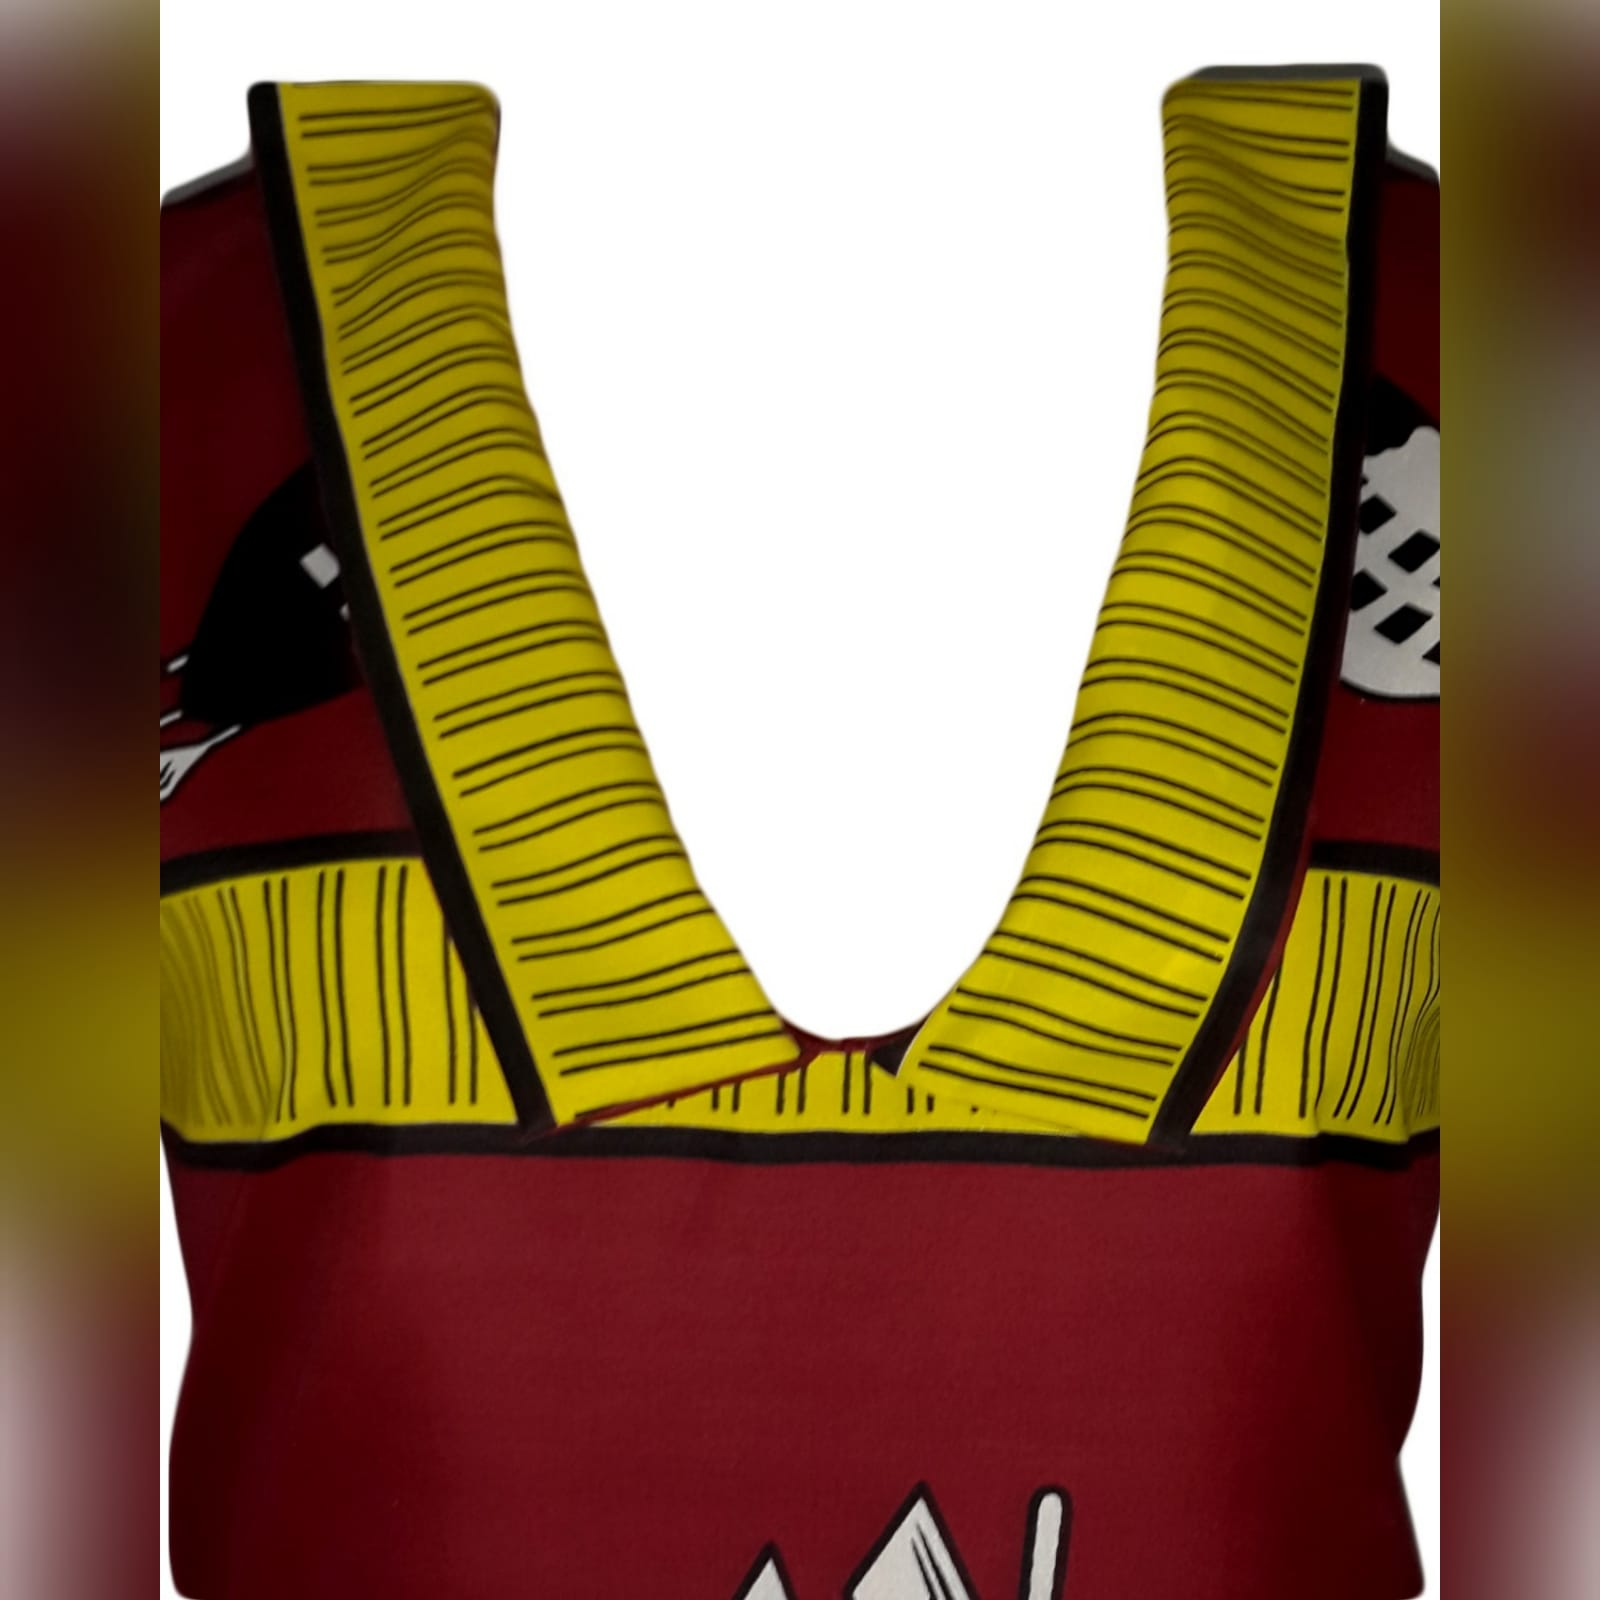 Traditional swati dress with matching swati doek 2 traditional swati dress with a v neckline, finished with a collar design that can be worn in 3 different ways. With a matching swati doek.